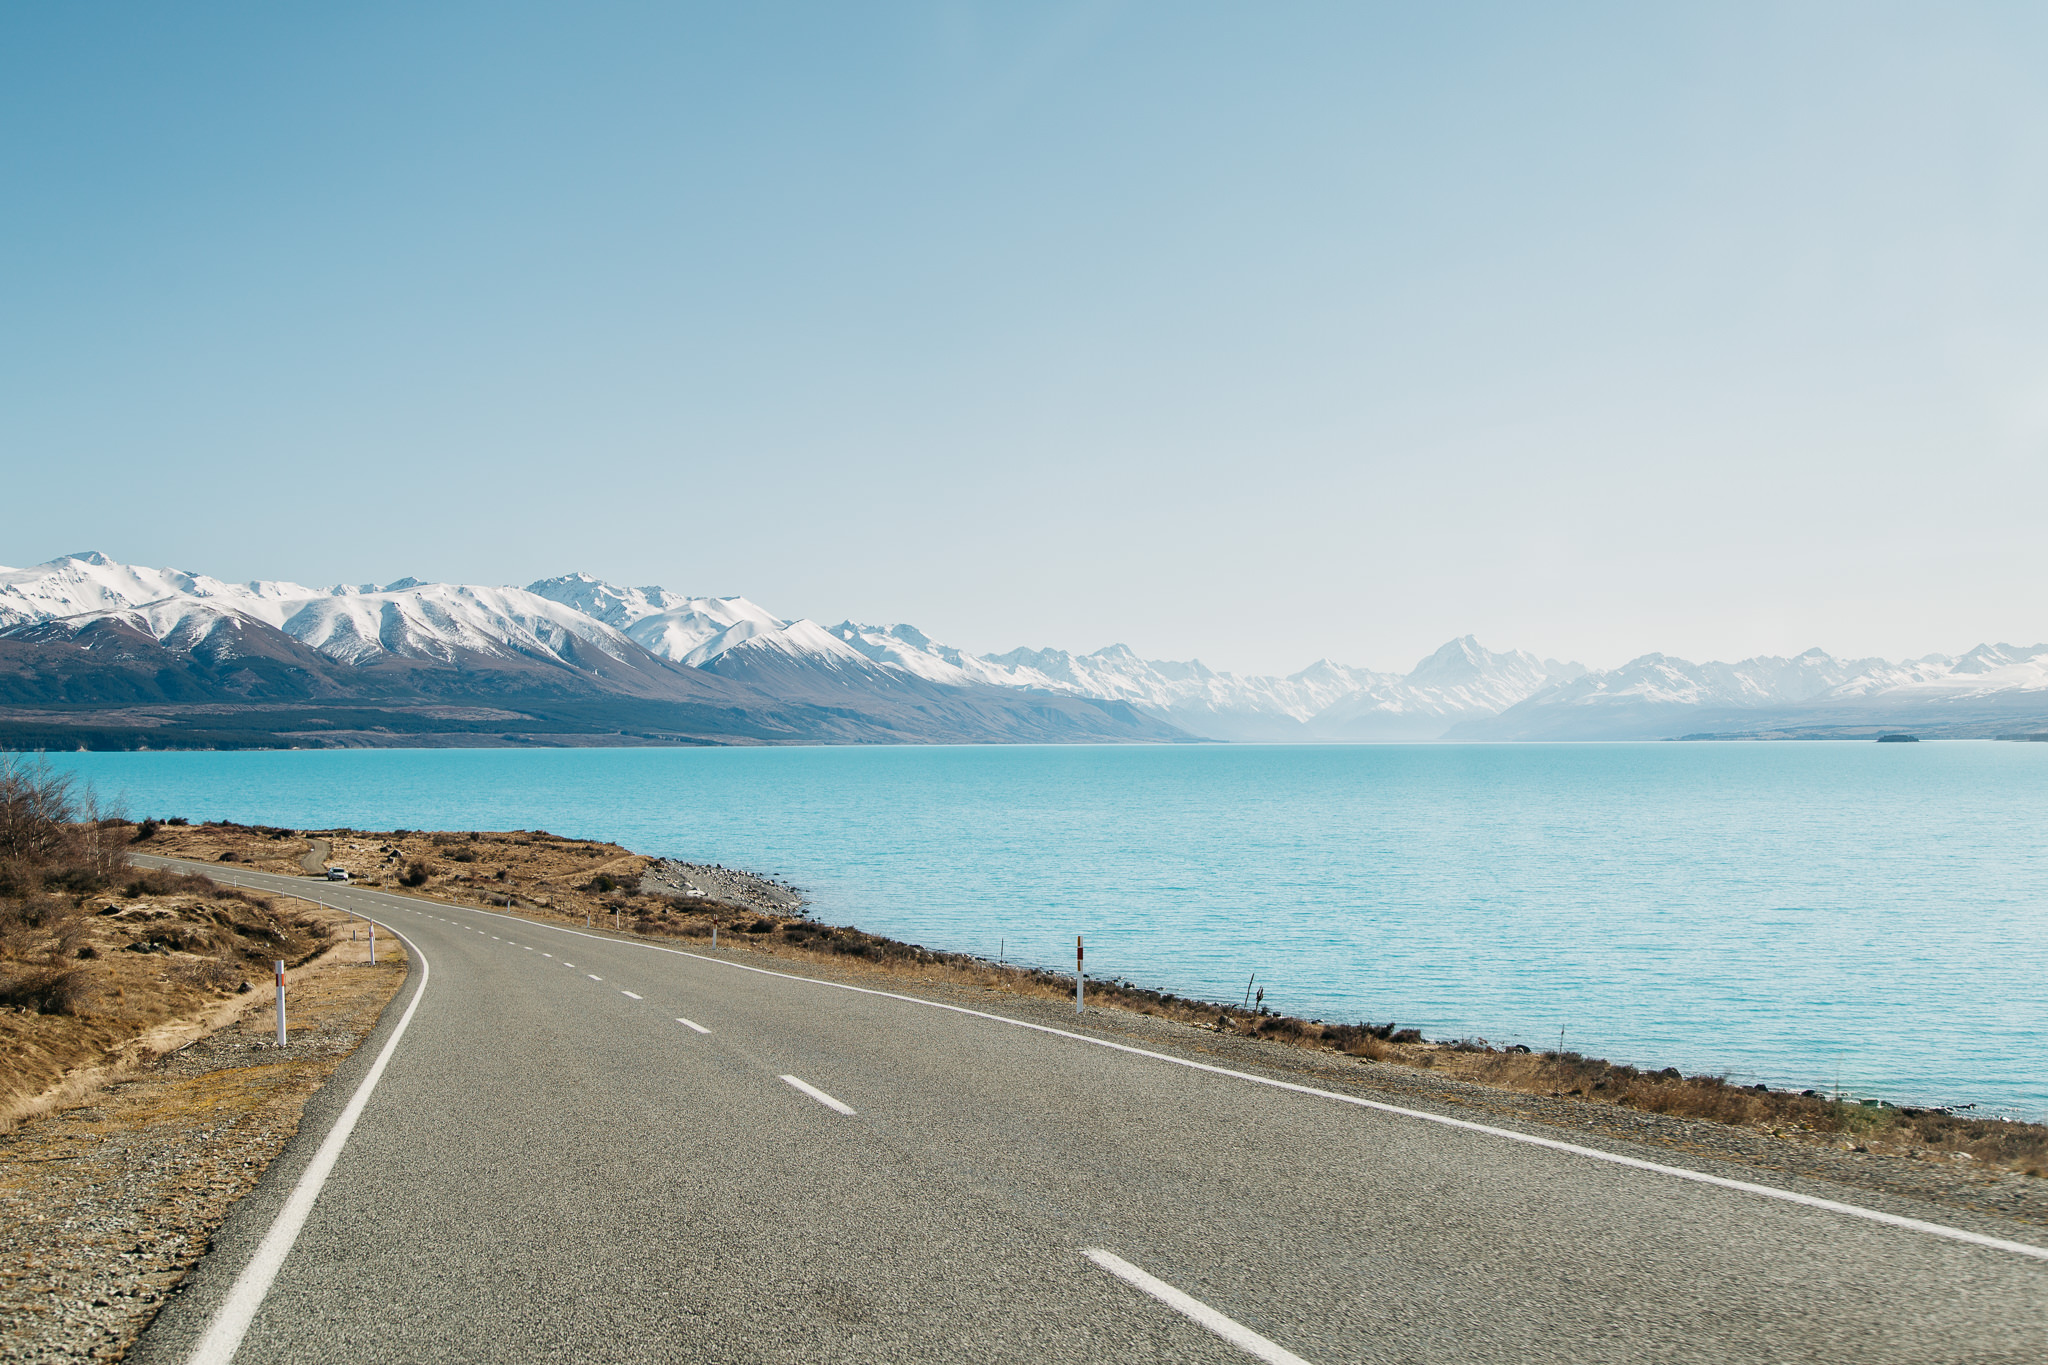 Road in front of Lake Pukaki in the South Island of New Zeland with Mount Cook in the background